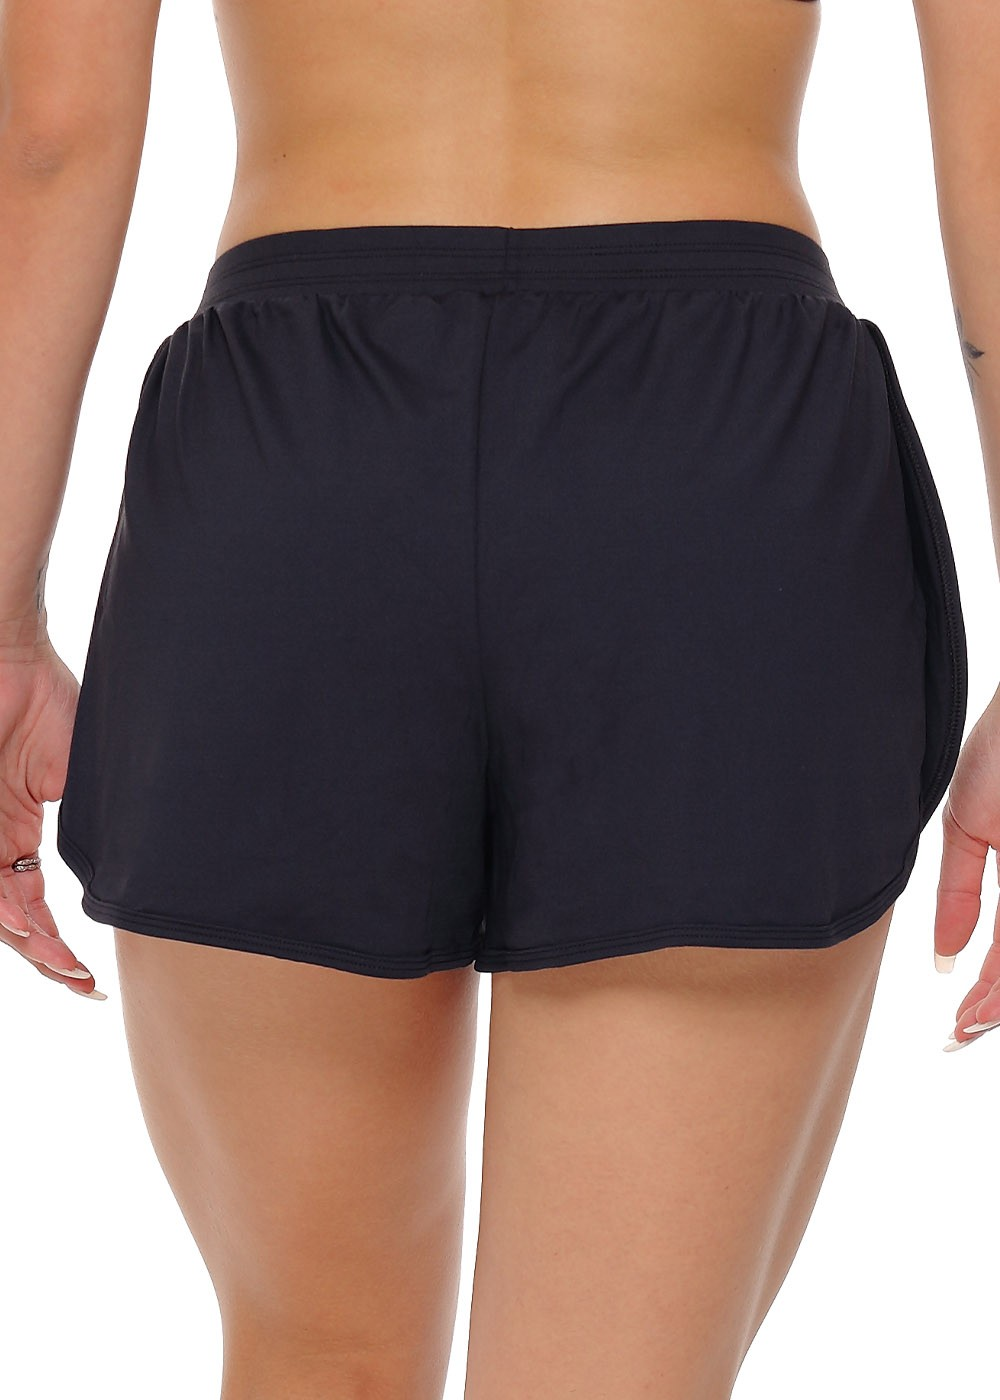 SHORTS RUNNING FEMININO JUST FIT - PRETO